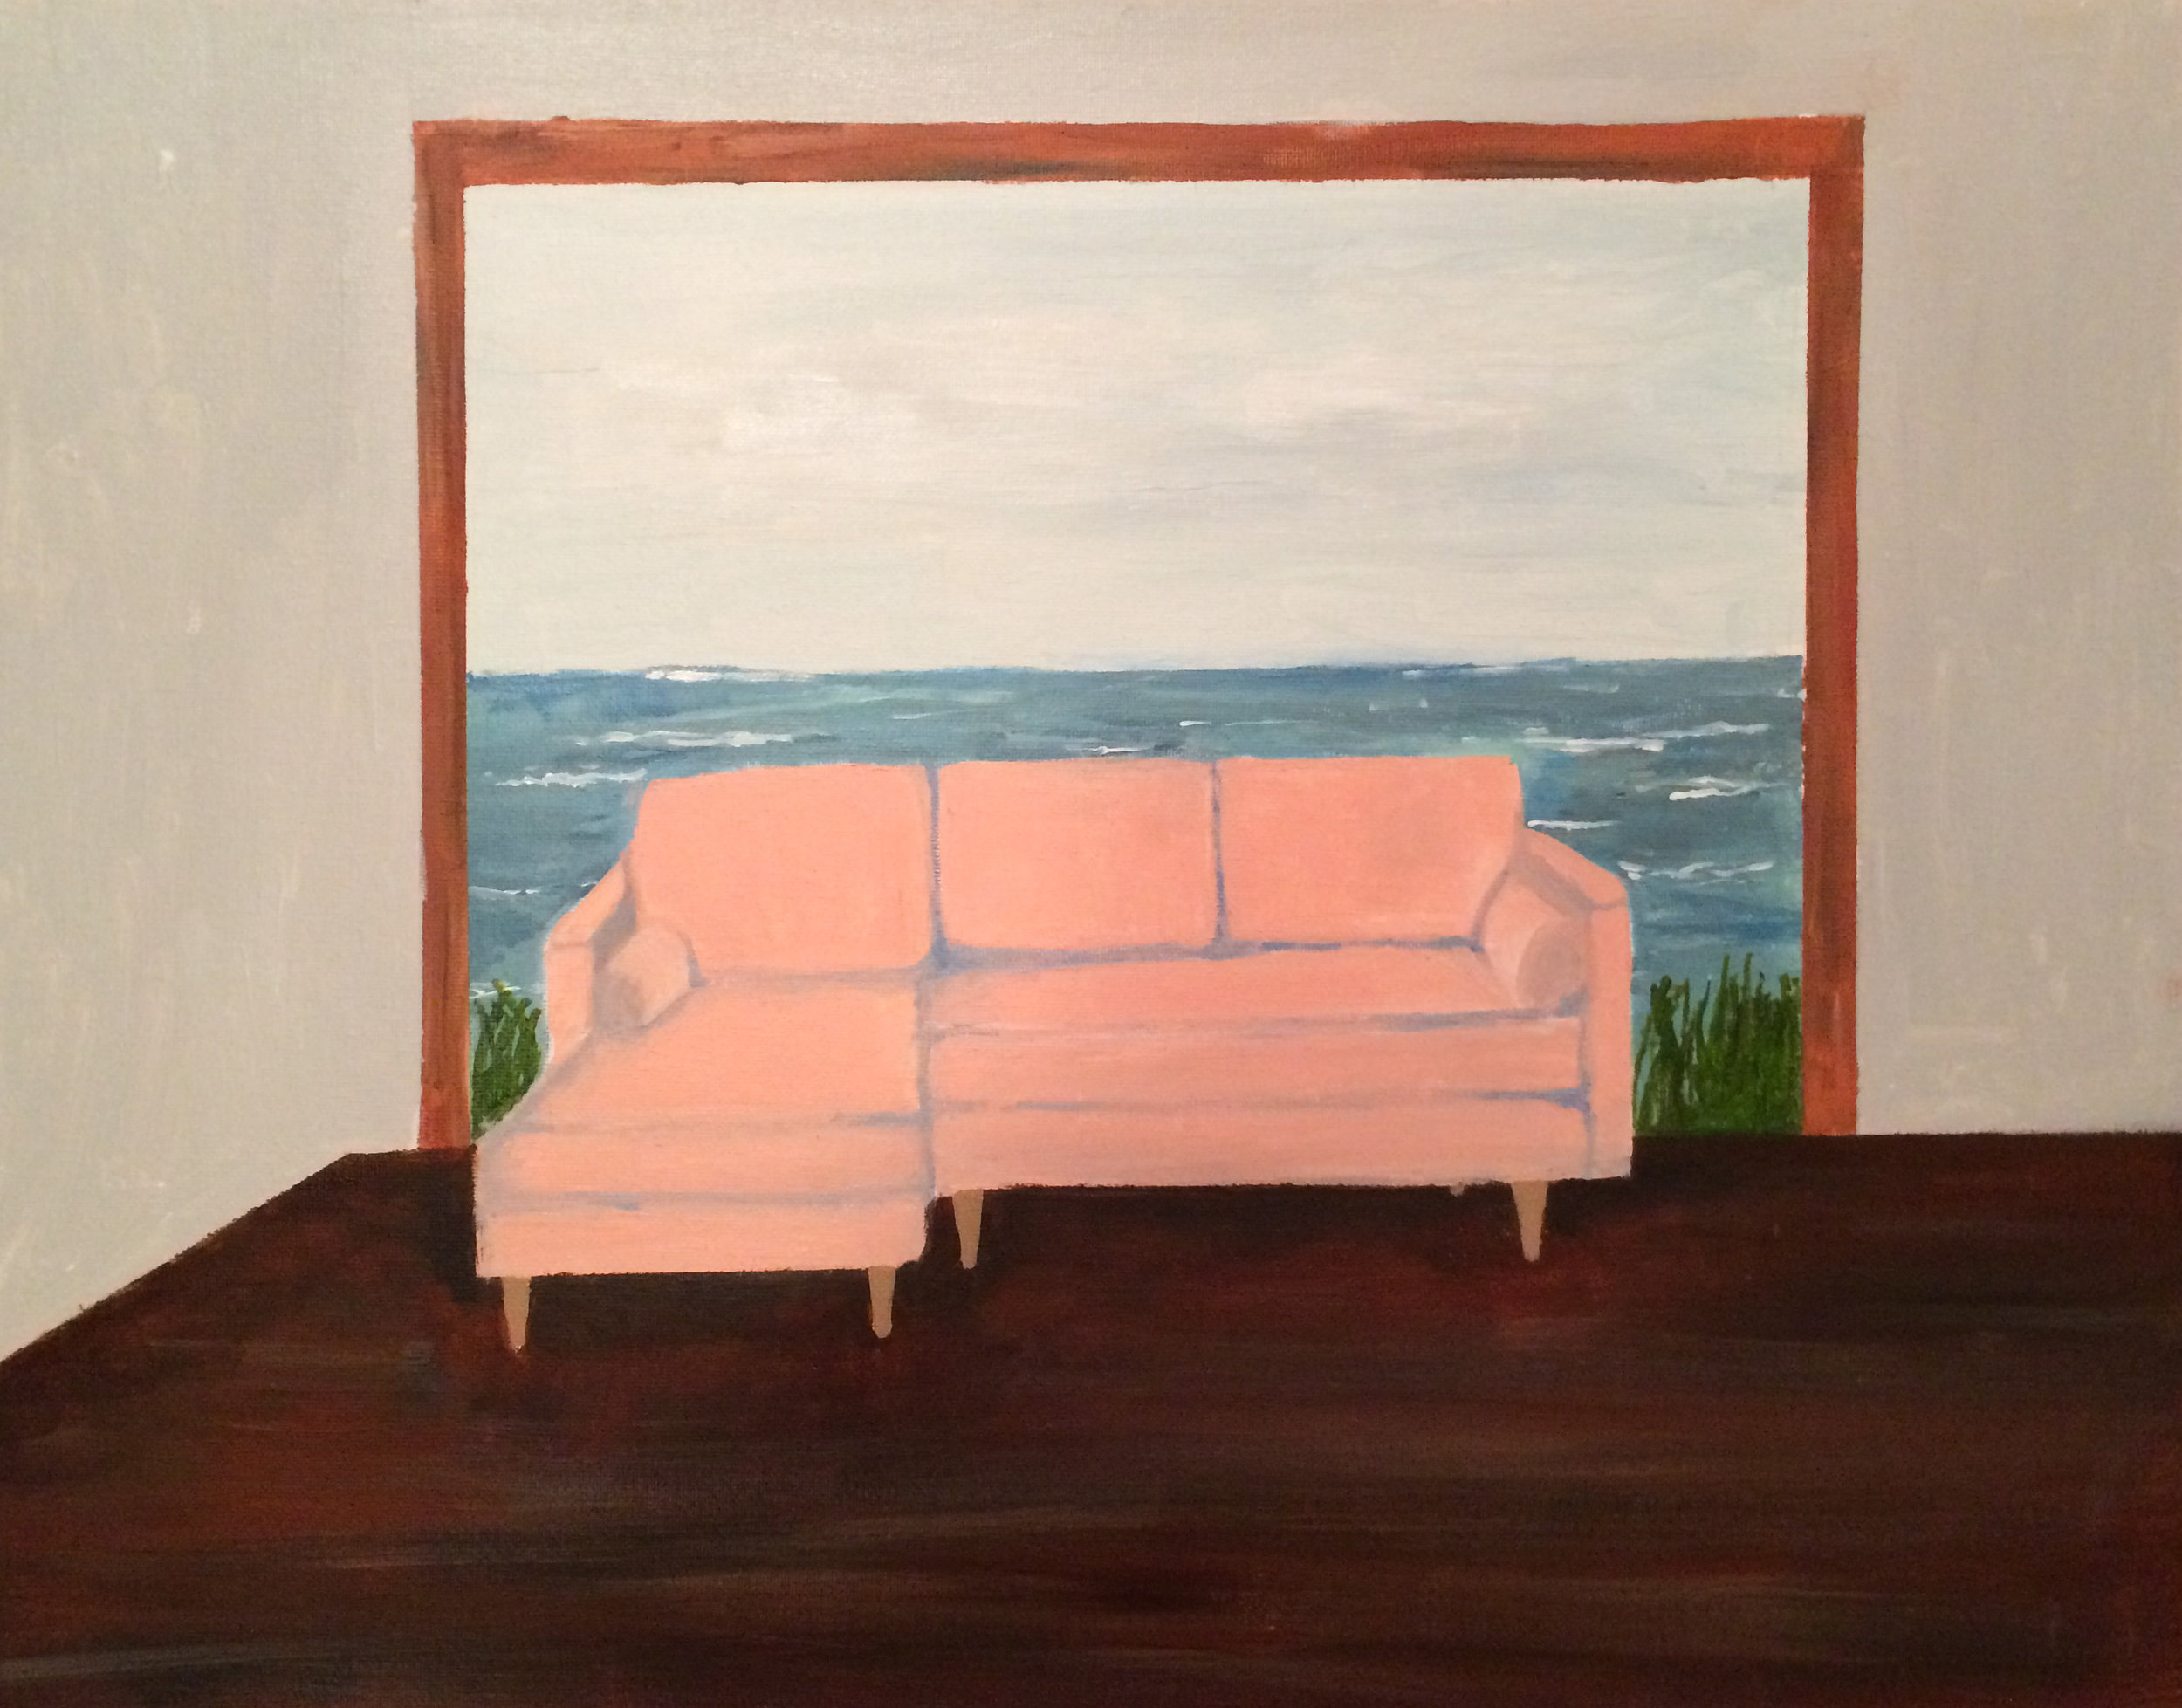 "Polly Shindler,  Pink Couch on the Ocean,  2018, acrylic on canvas, 16"" x 20"""